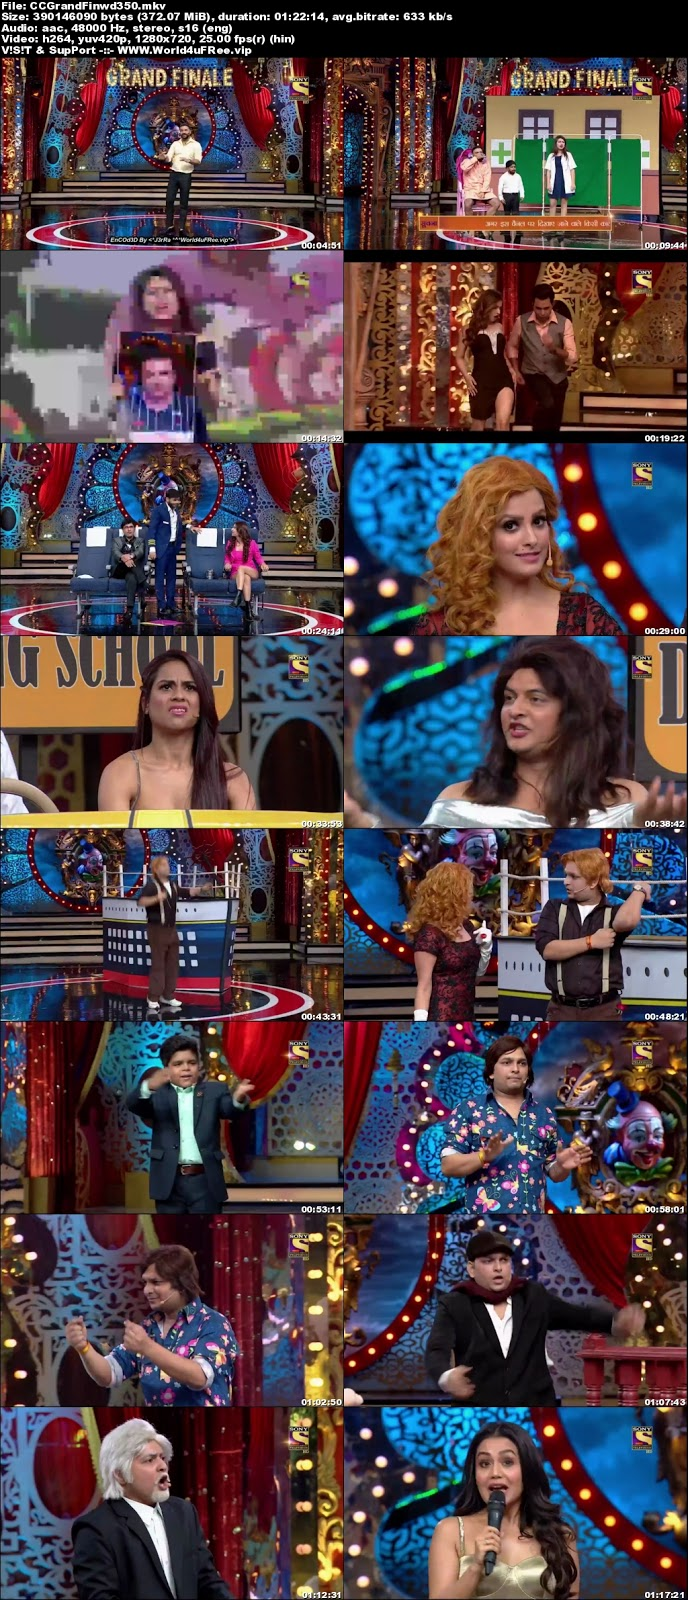 Comedy Circus 2018 Grand Finale 720p WEBRip 350mb x264 world4ufree.fun tv show Comedy Circus 2018 hindi tv show Comedy Circus 2018 Season 1 sony tv show compressed small size free download or watch online at world4ufree.fun